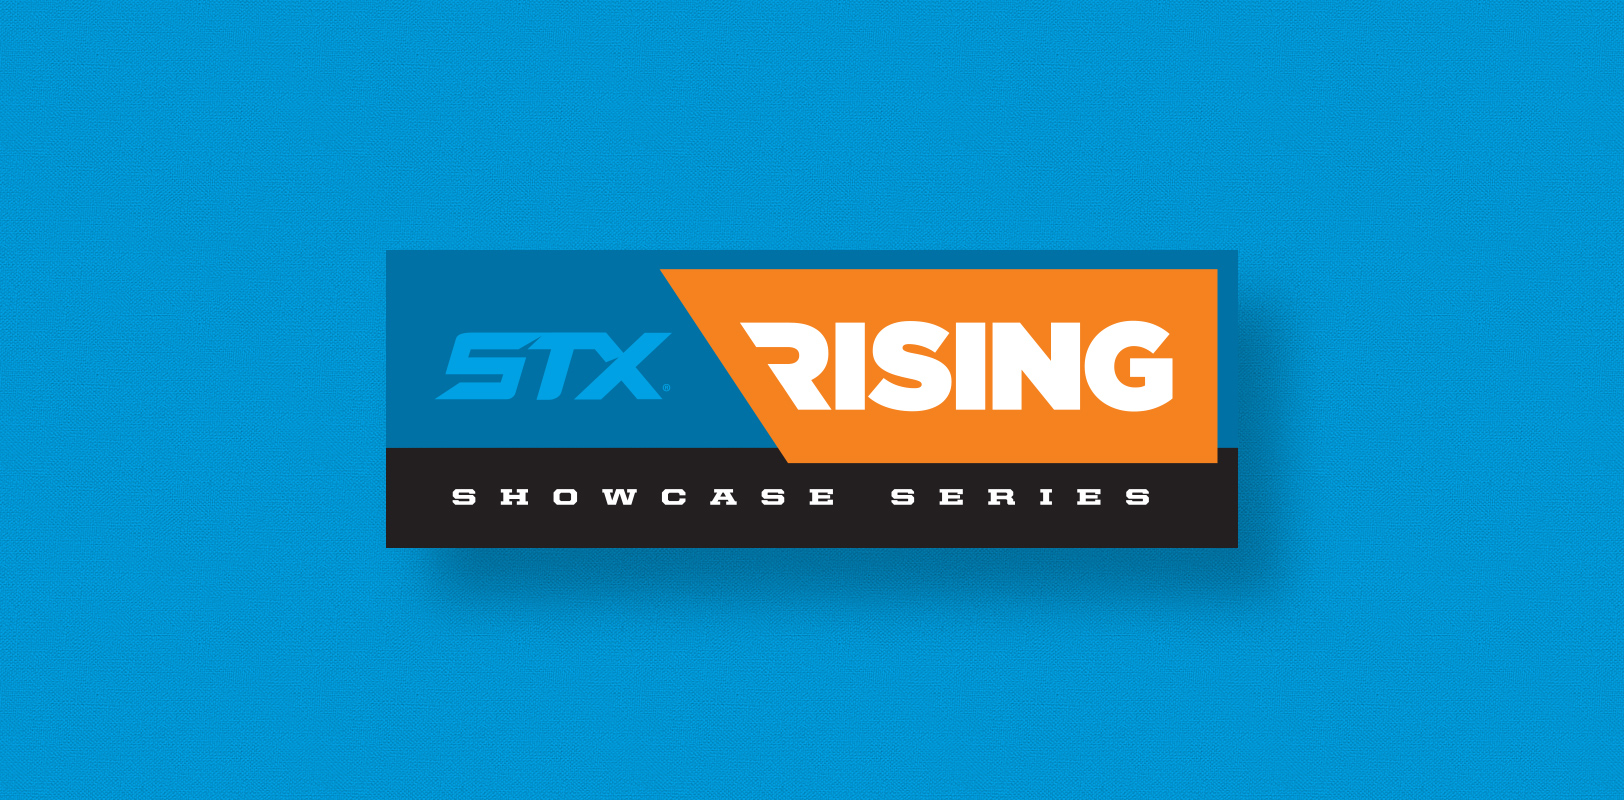 Sports logo design for the STX 3d Rising lacrosse showcase series